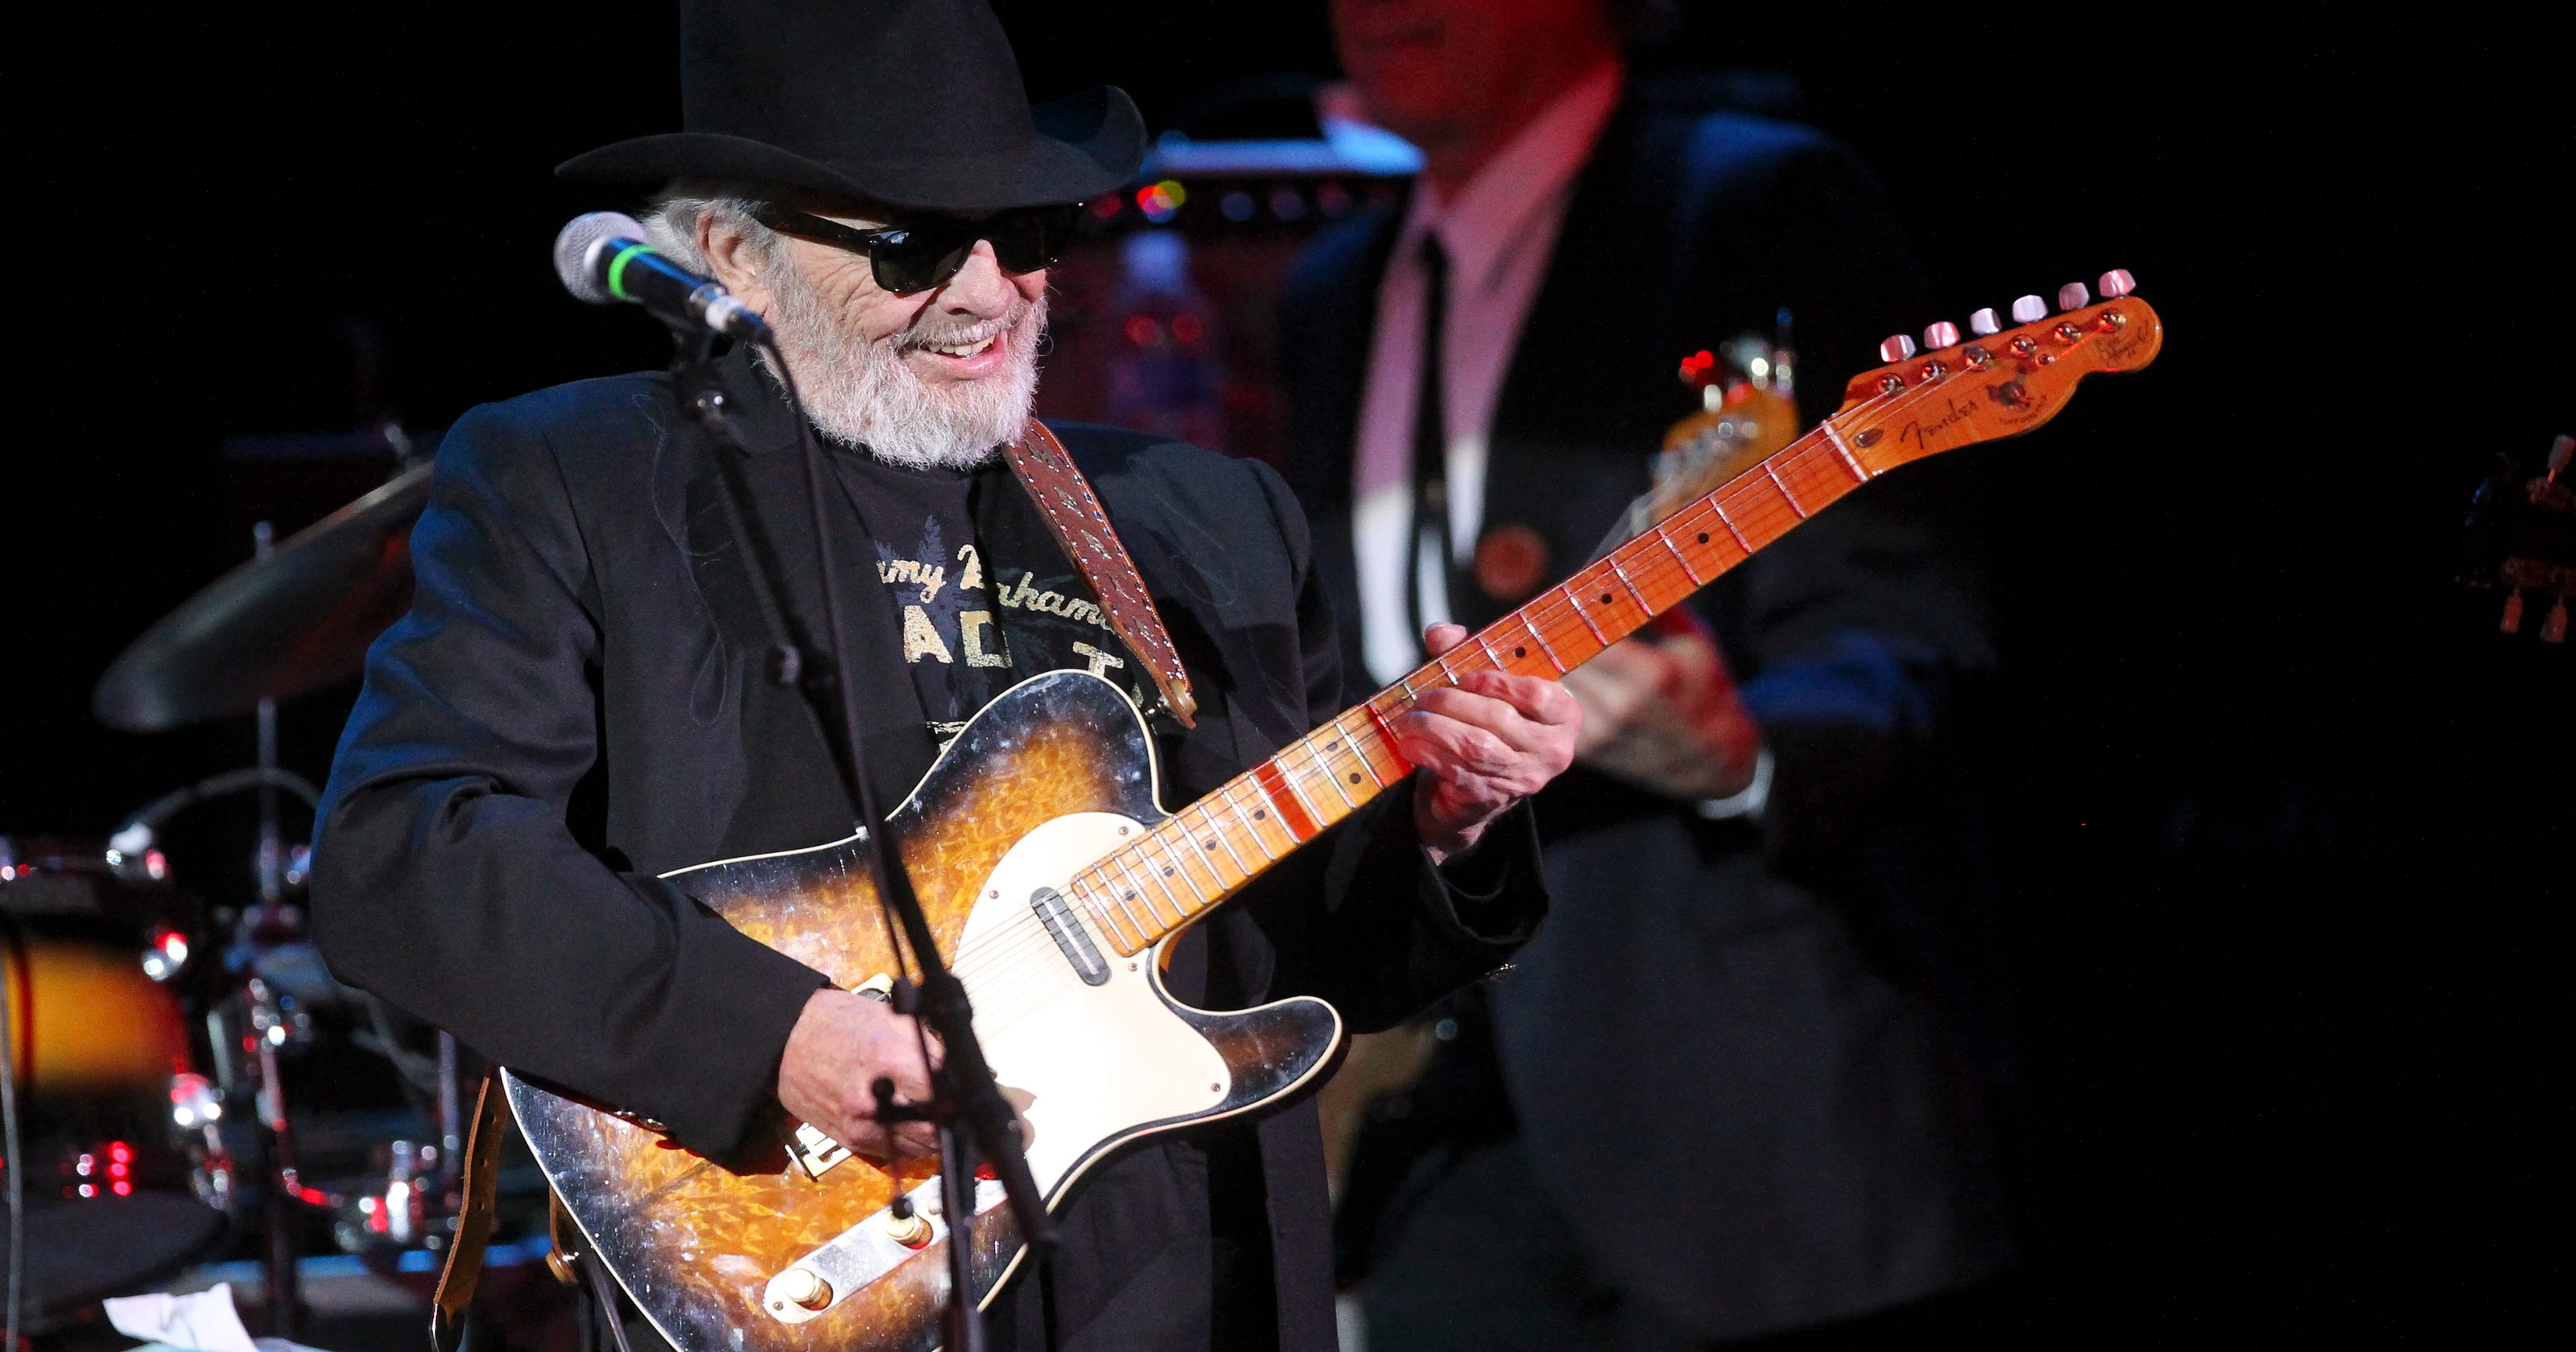 Bus driver's book takes cruise down memory lane with country music legend Merle Haggard